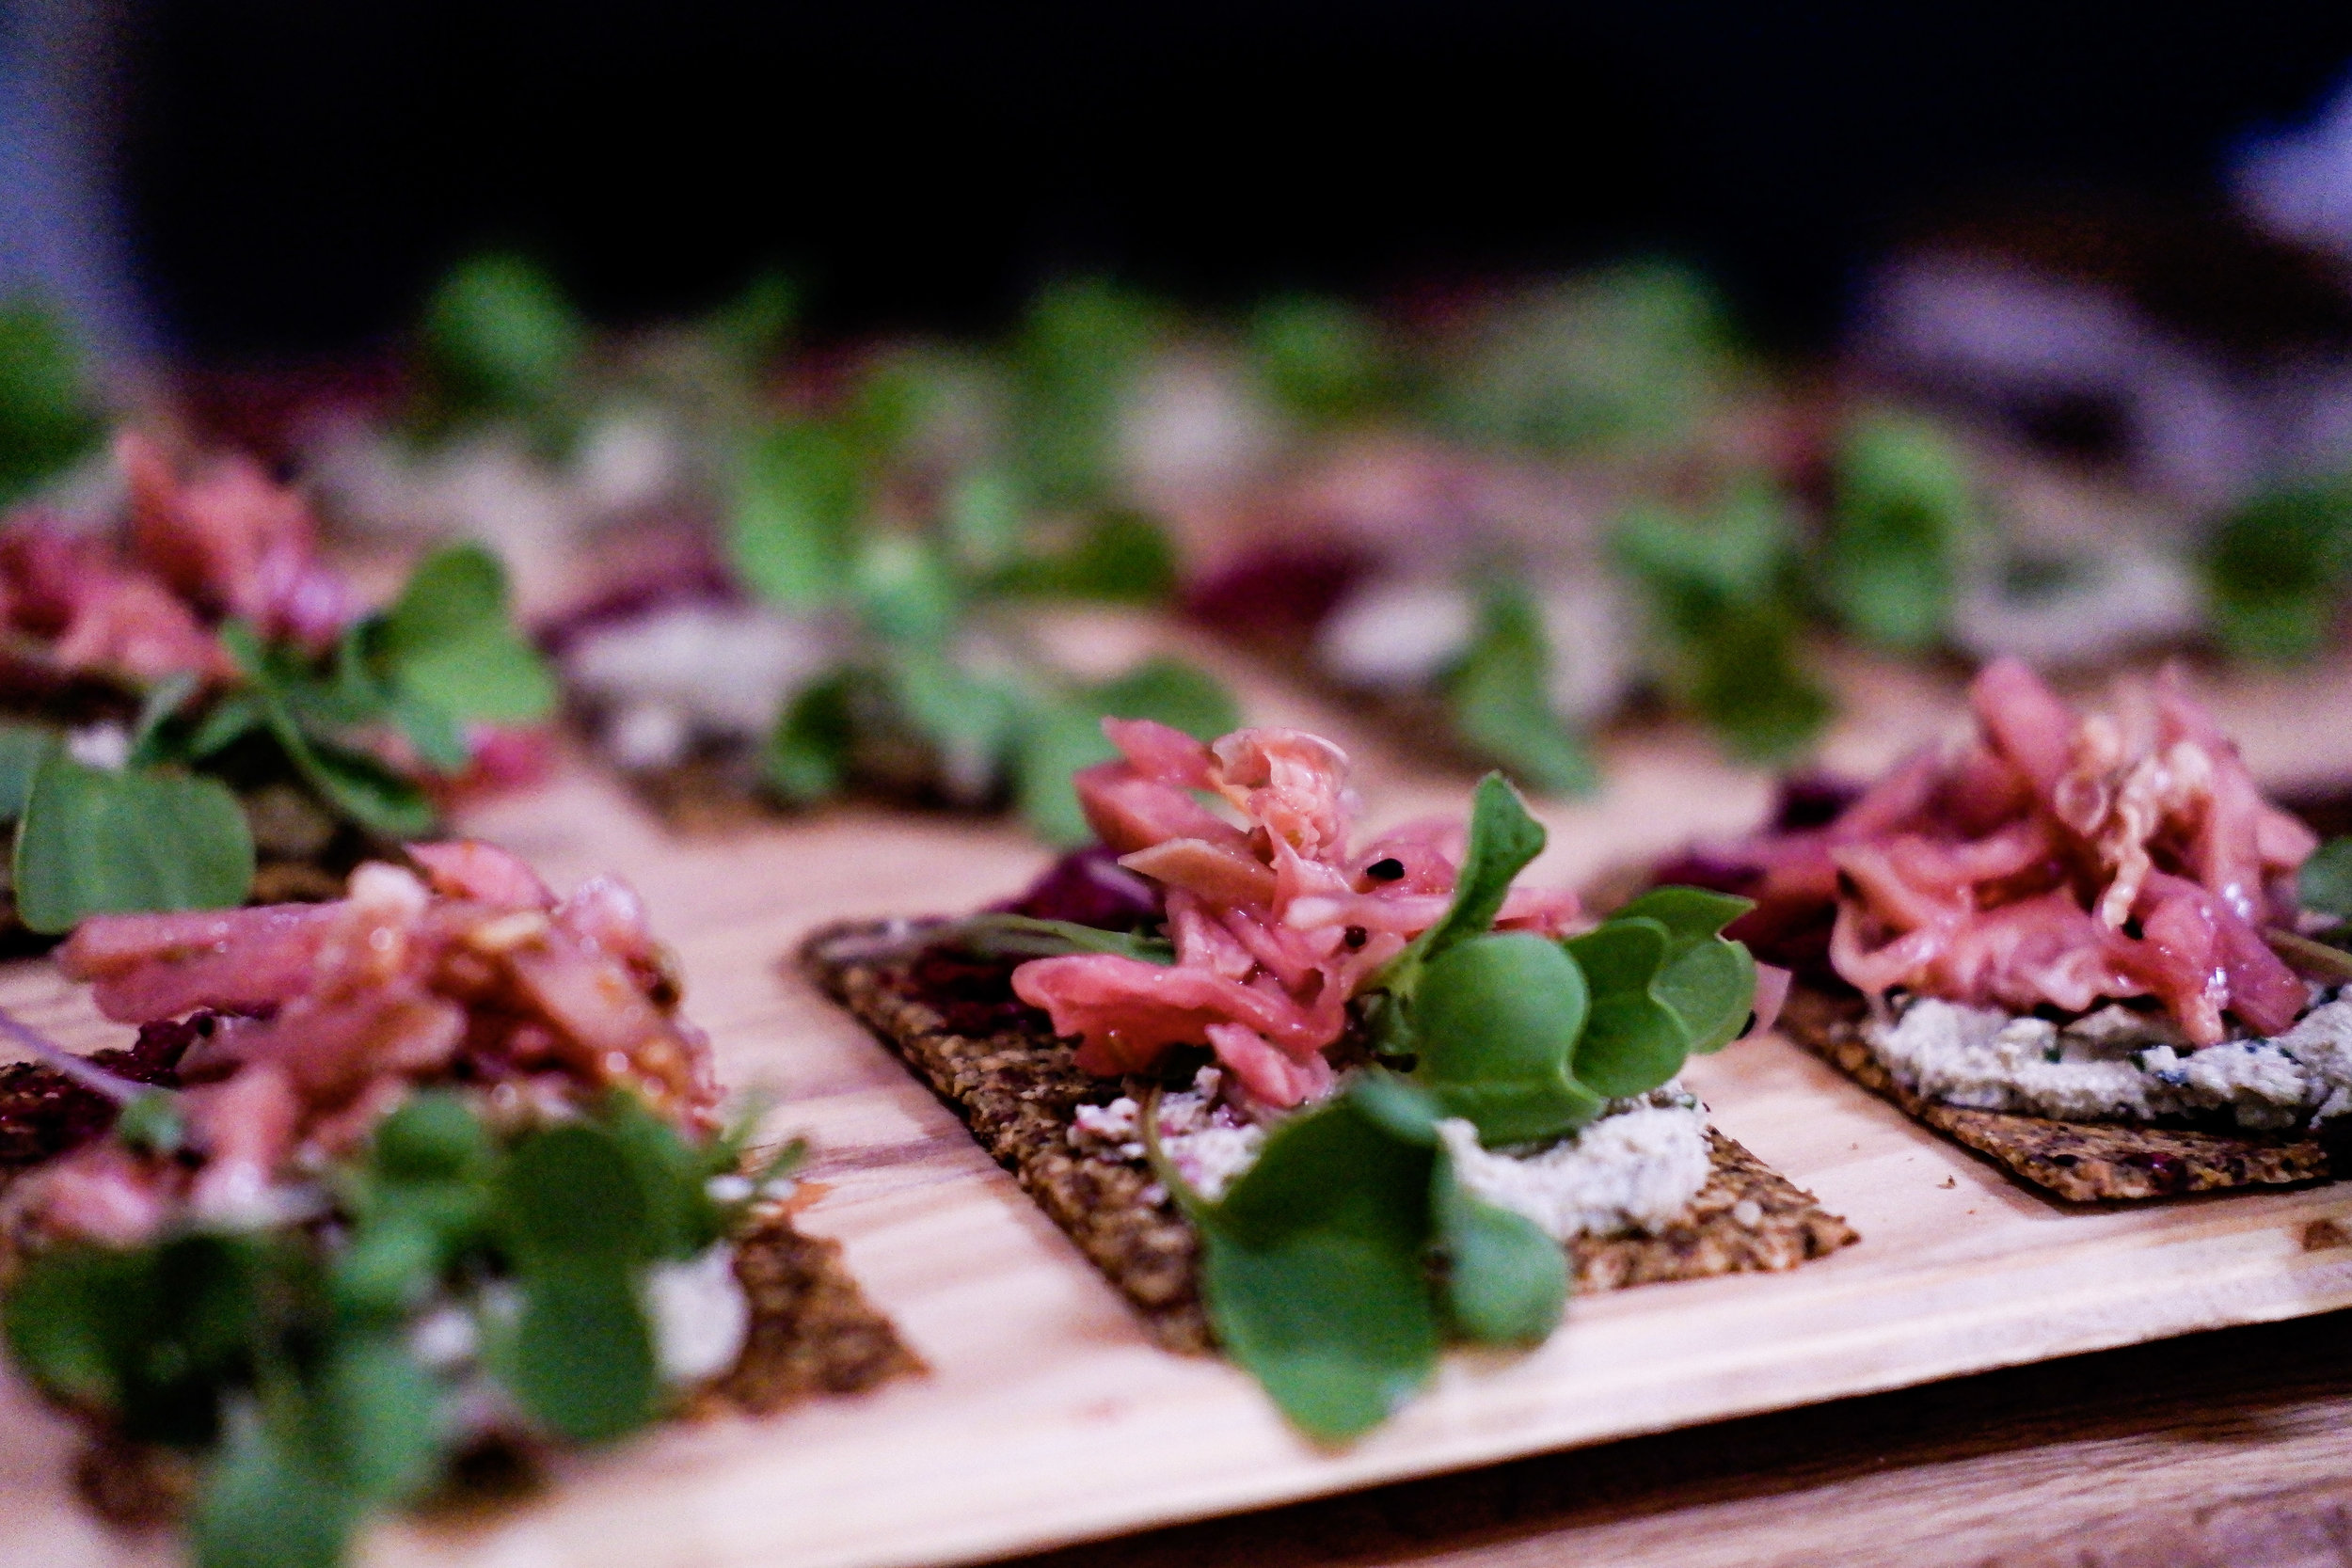 FULL SERVICE CHEF - Applying Global food concept to locally grown seasonal ingredients